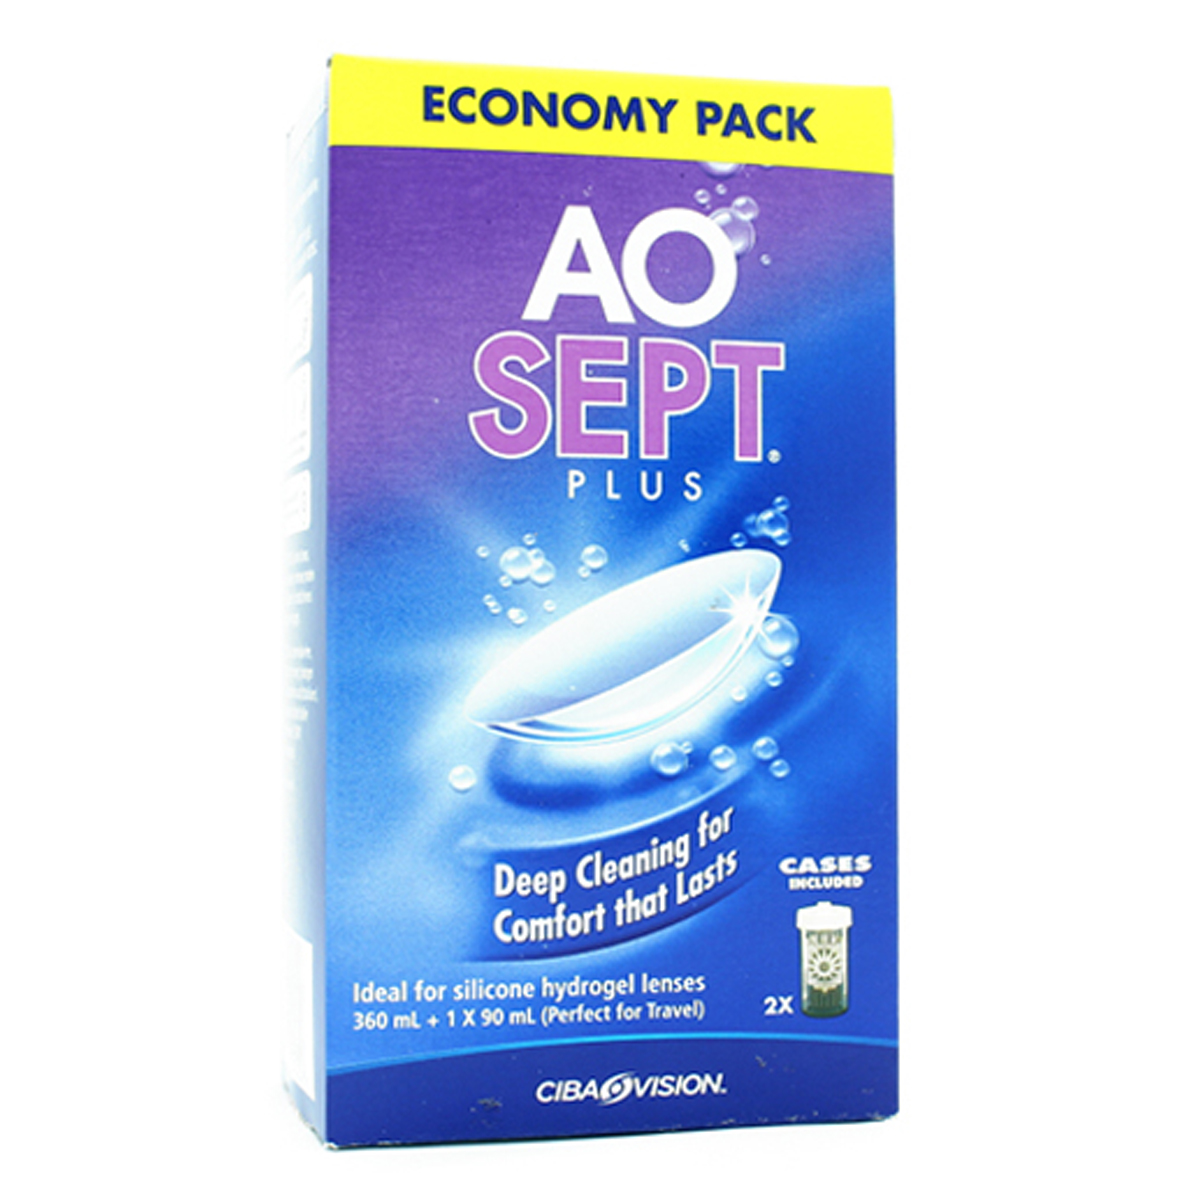 Image for Aosept Plus Disinfecting Solution Economy Pack - 450ml from Amcal